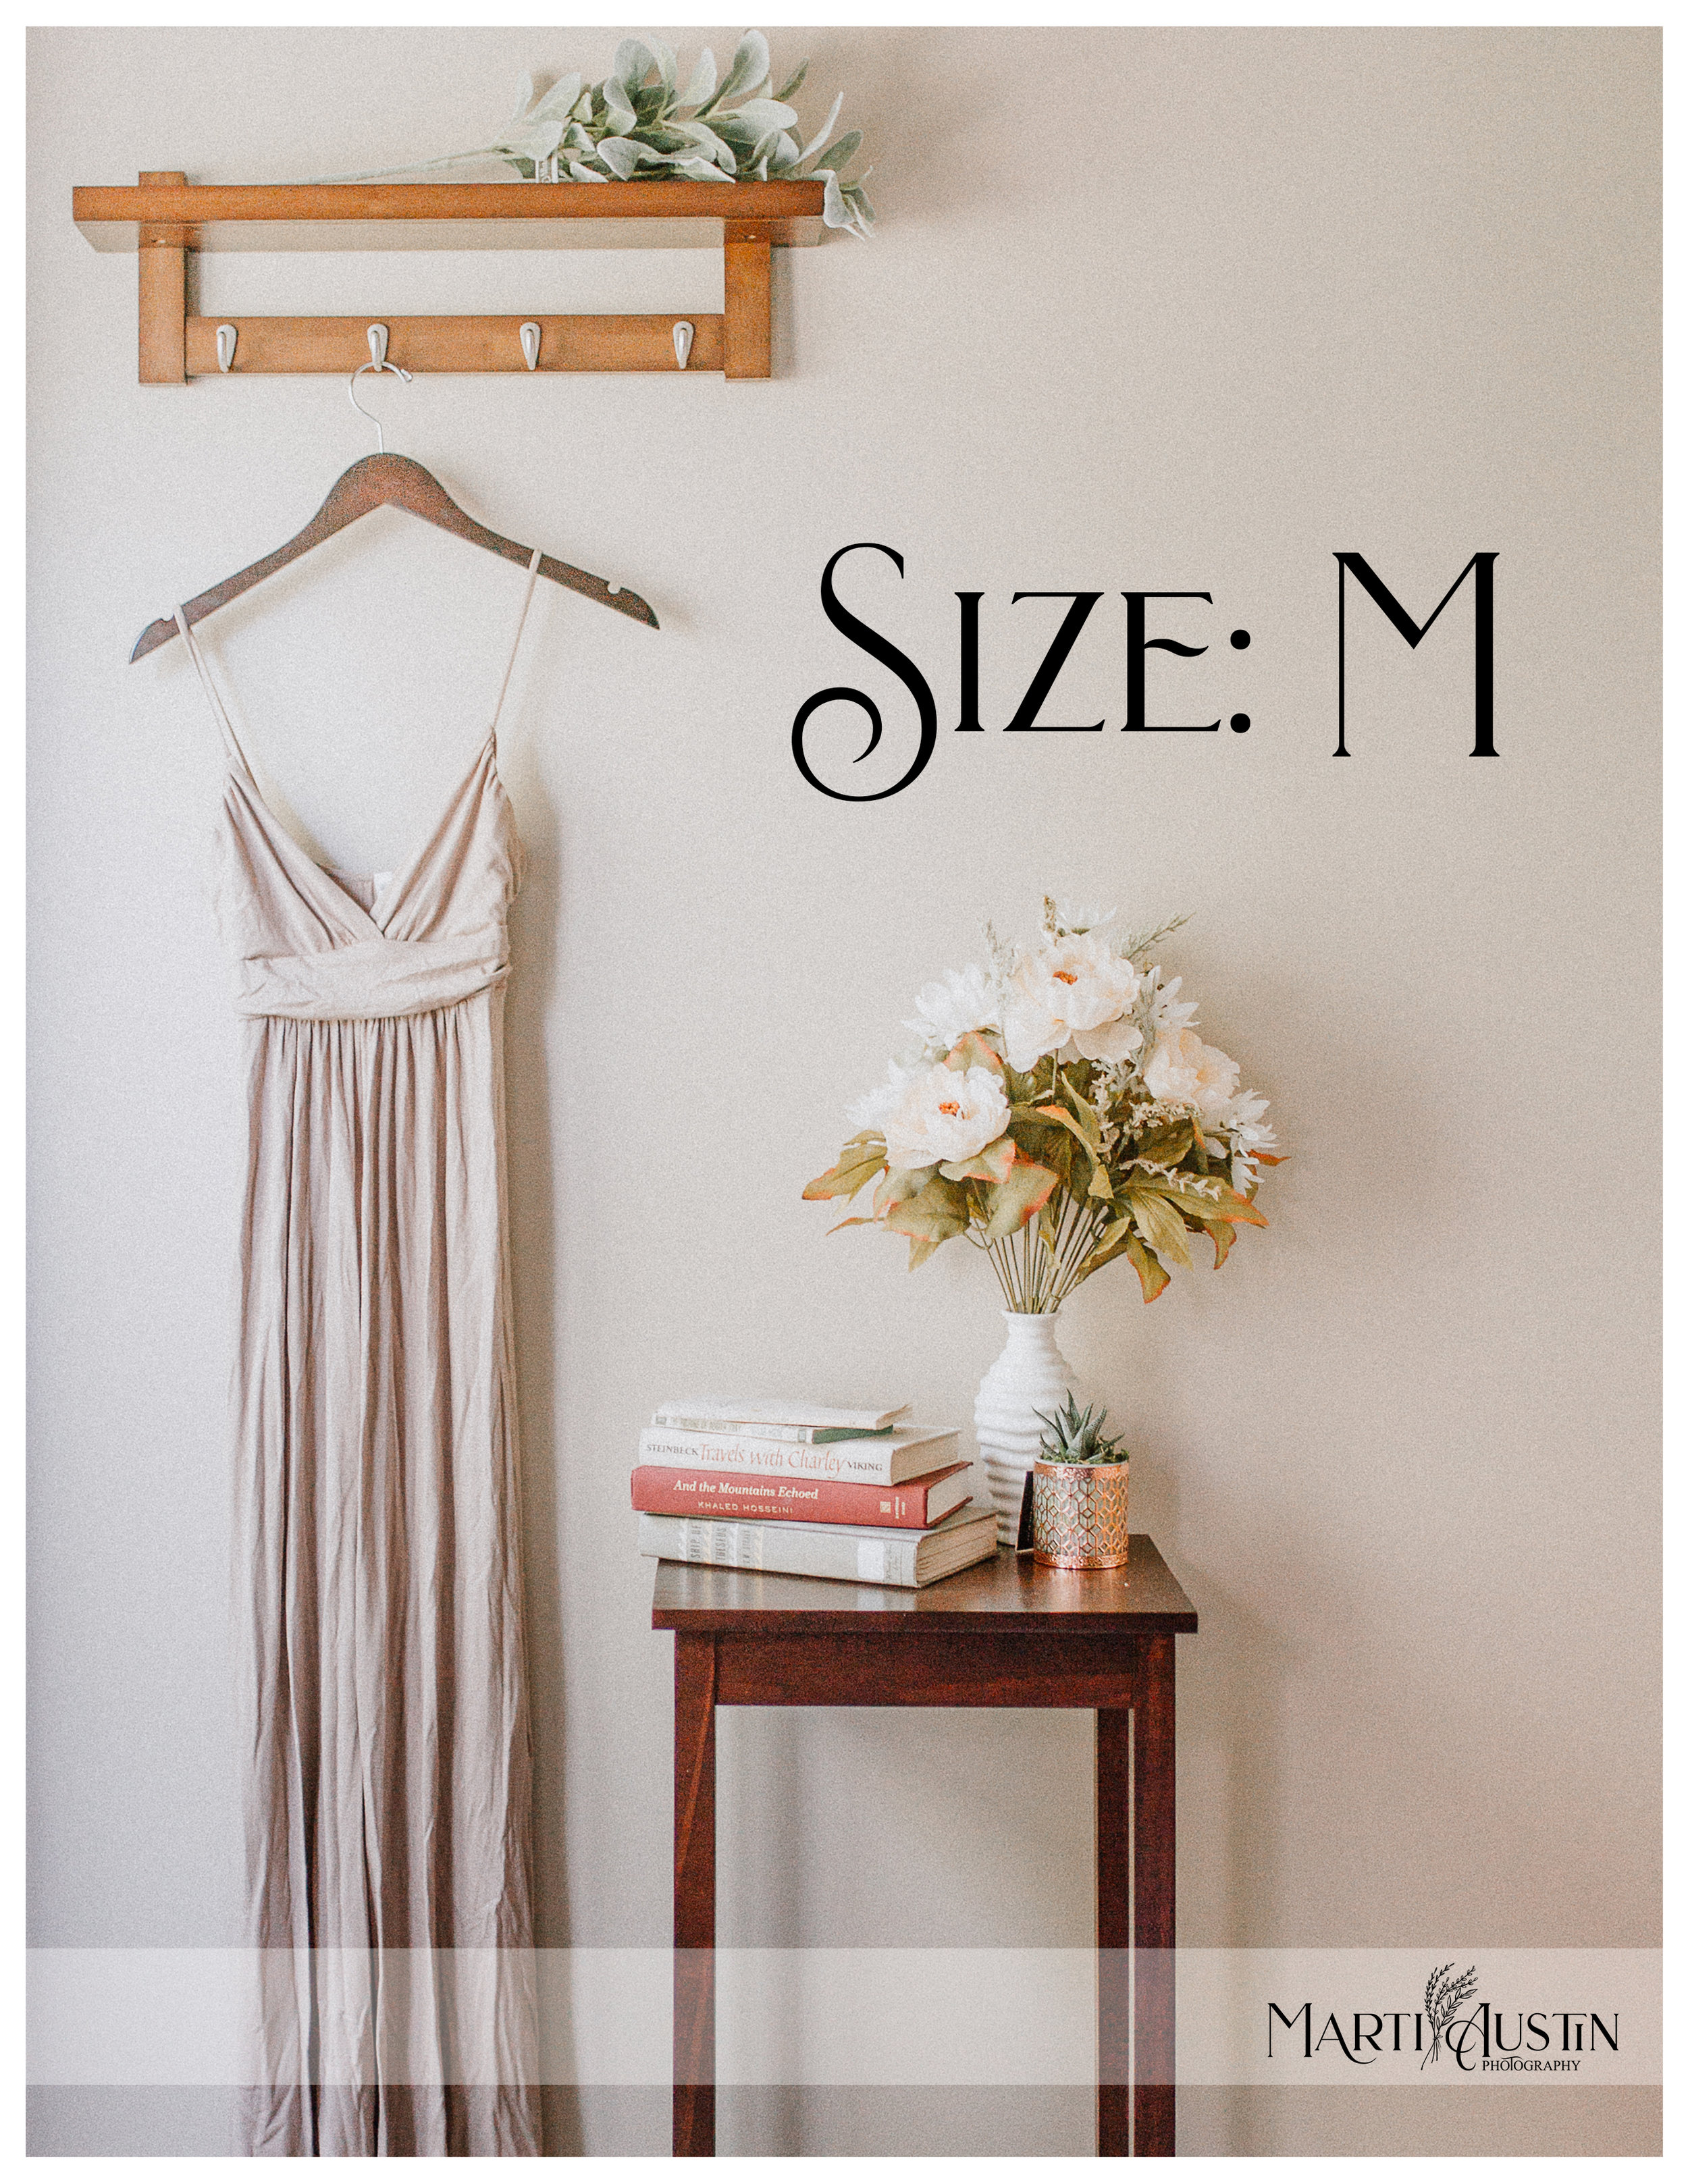 Long tan maternity dress hanging on the wall next to a table of books and flowwers